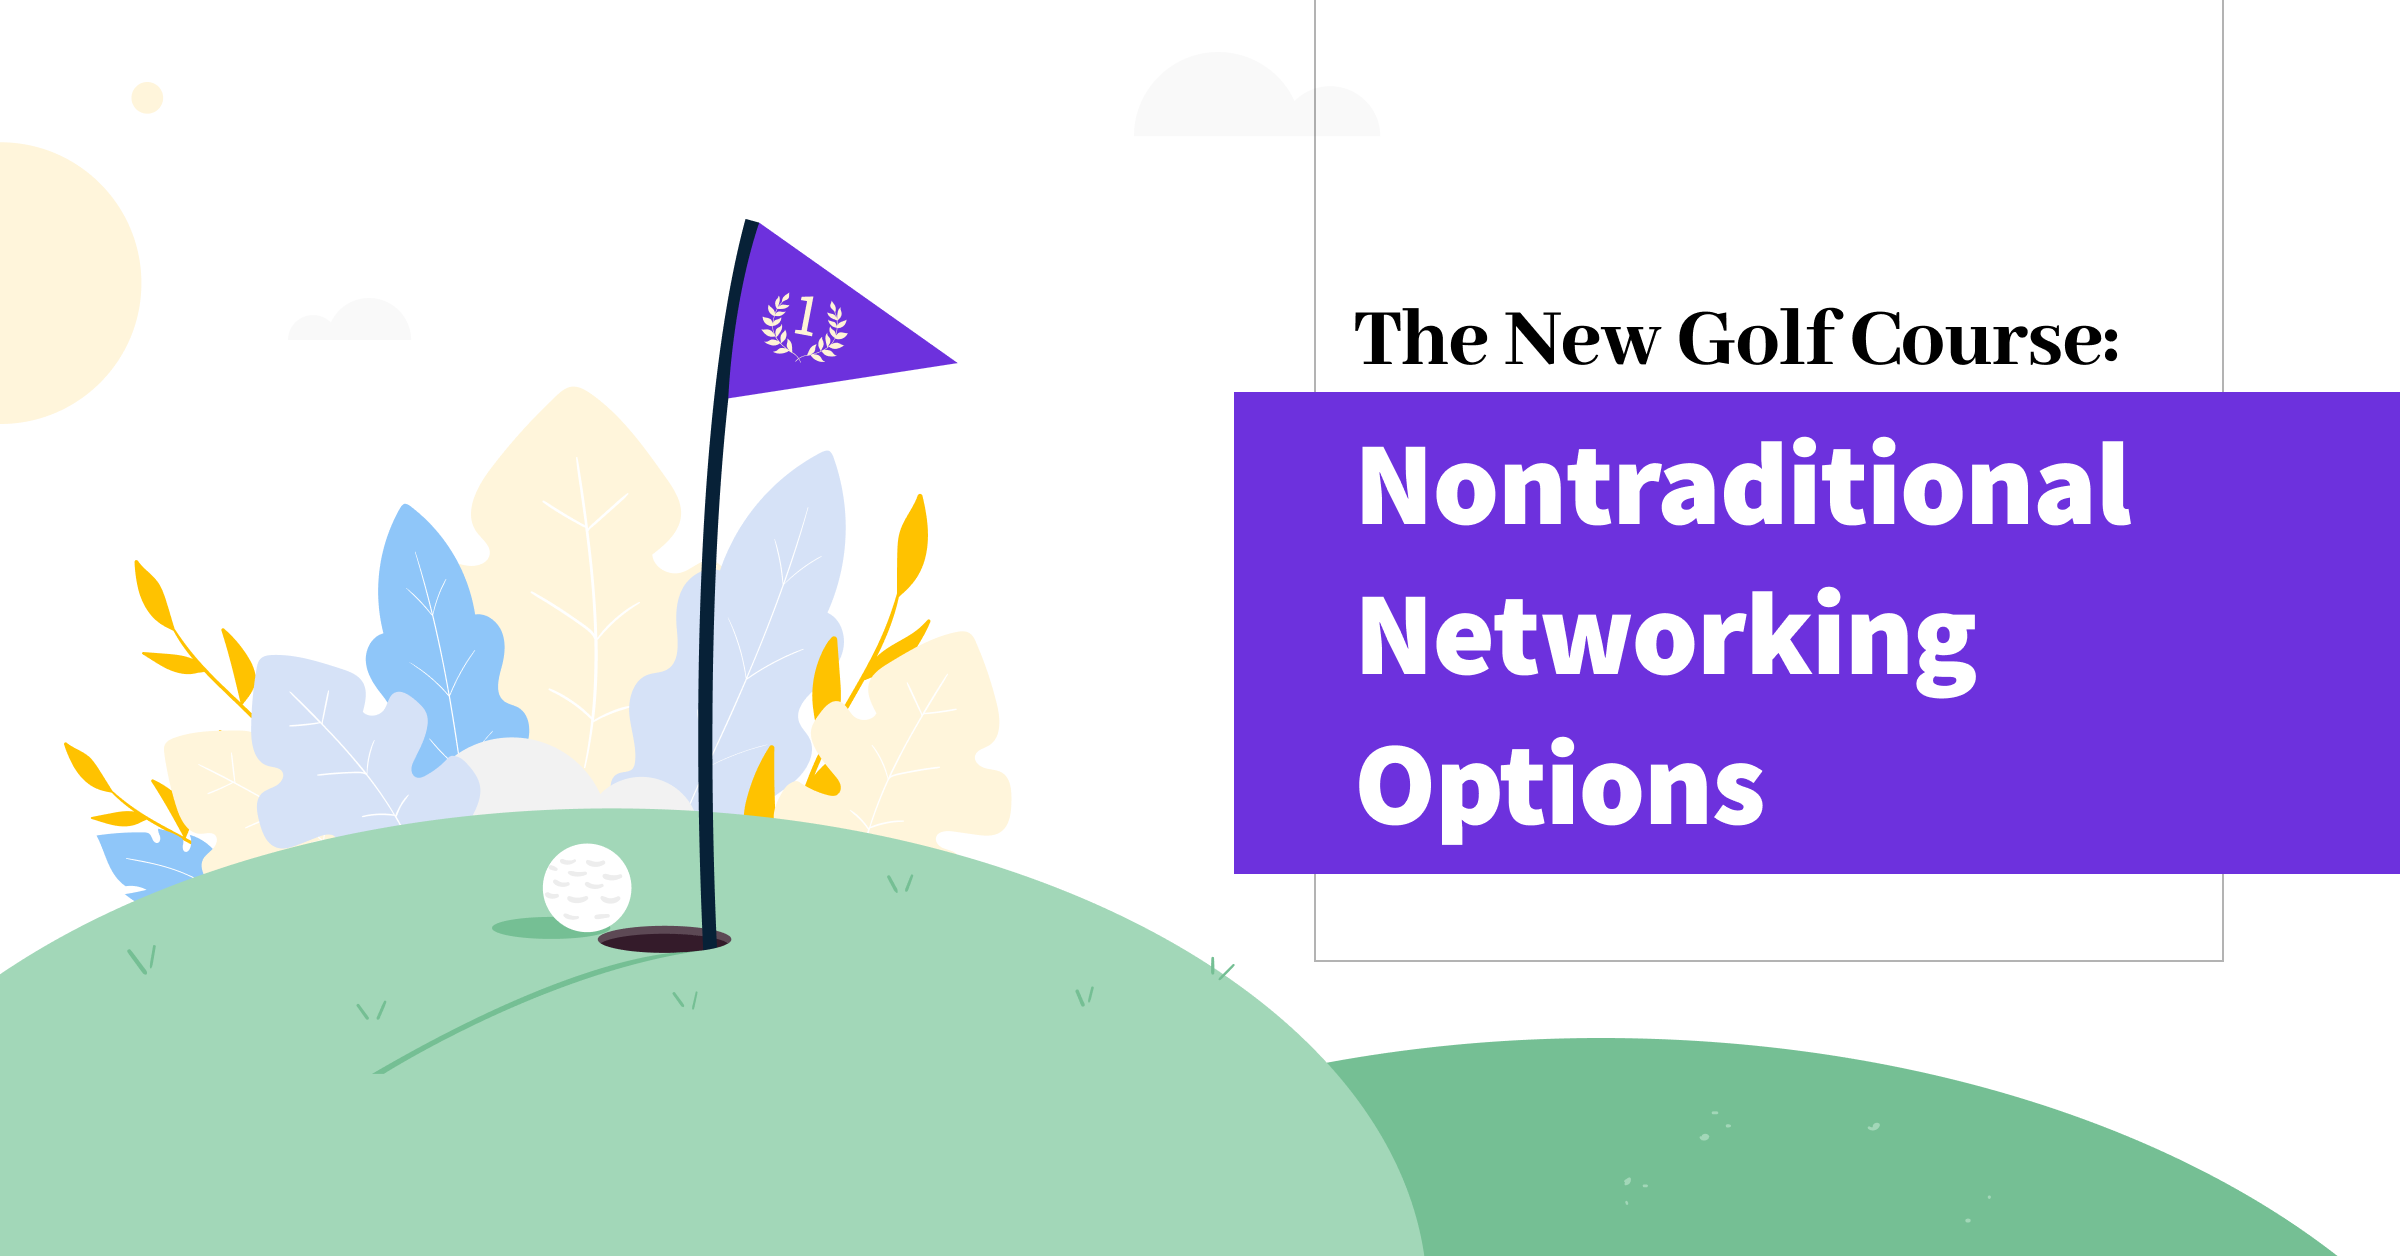 The New Golf Course: Nontraditional Networking Options